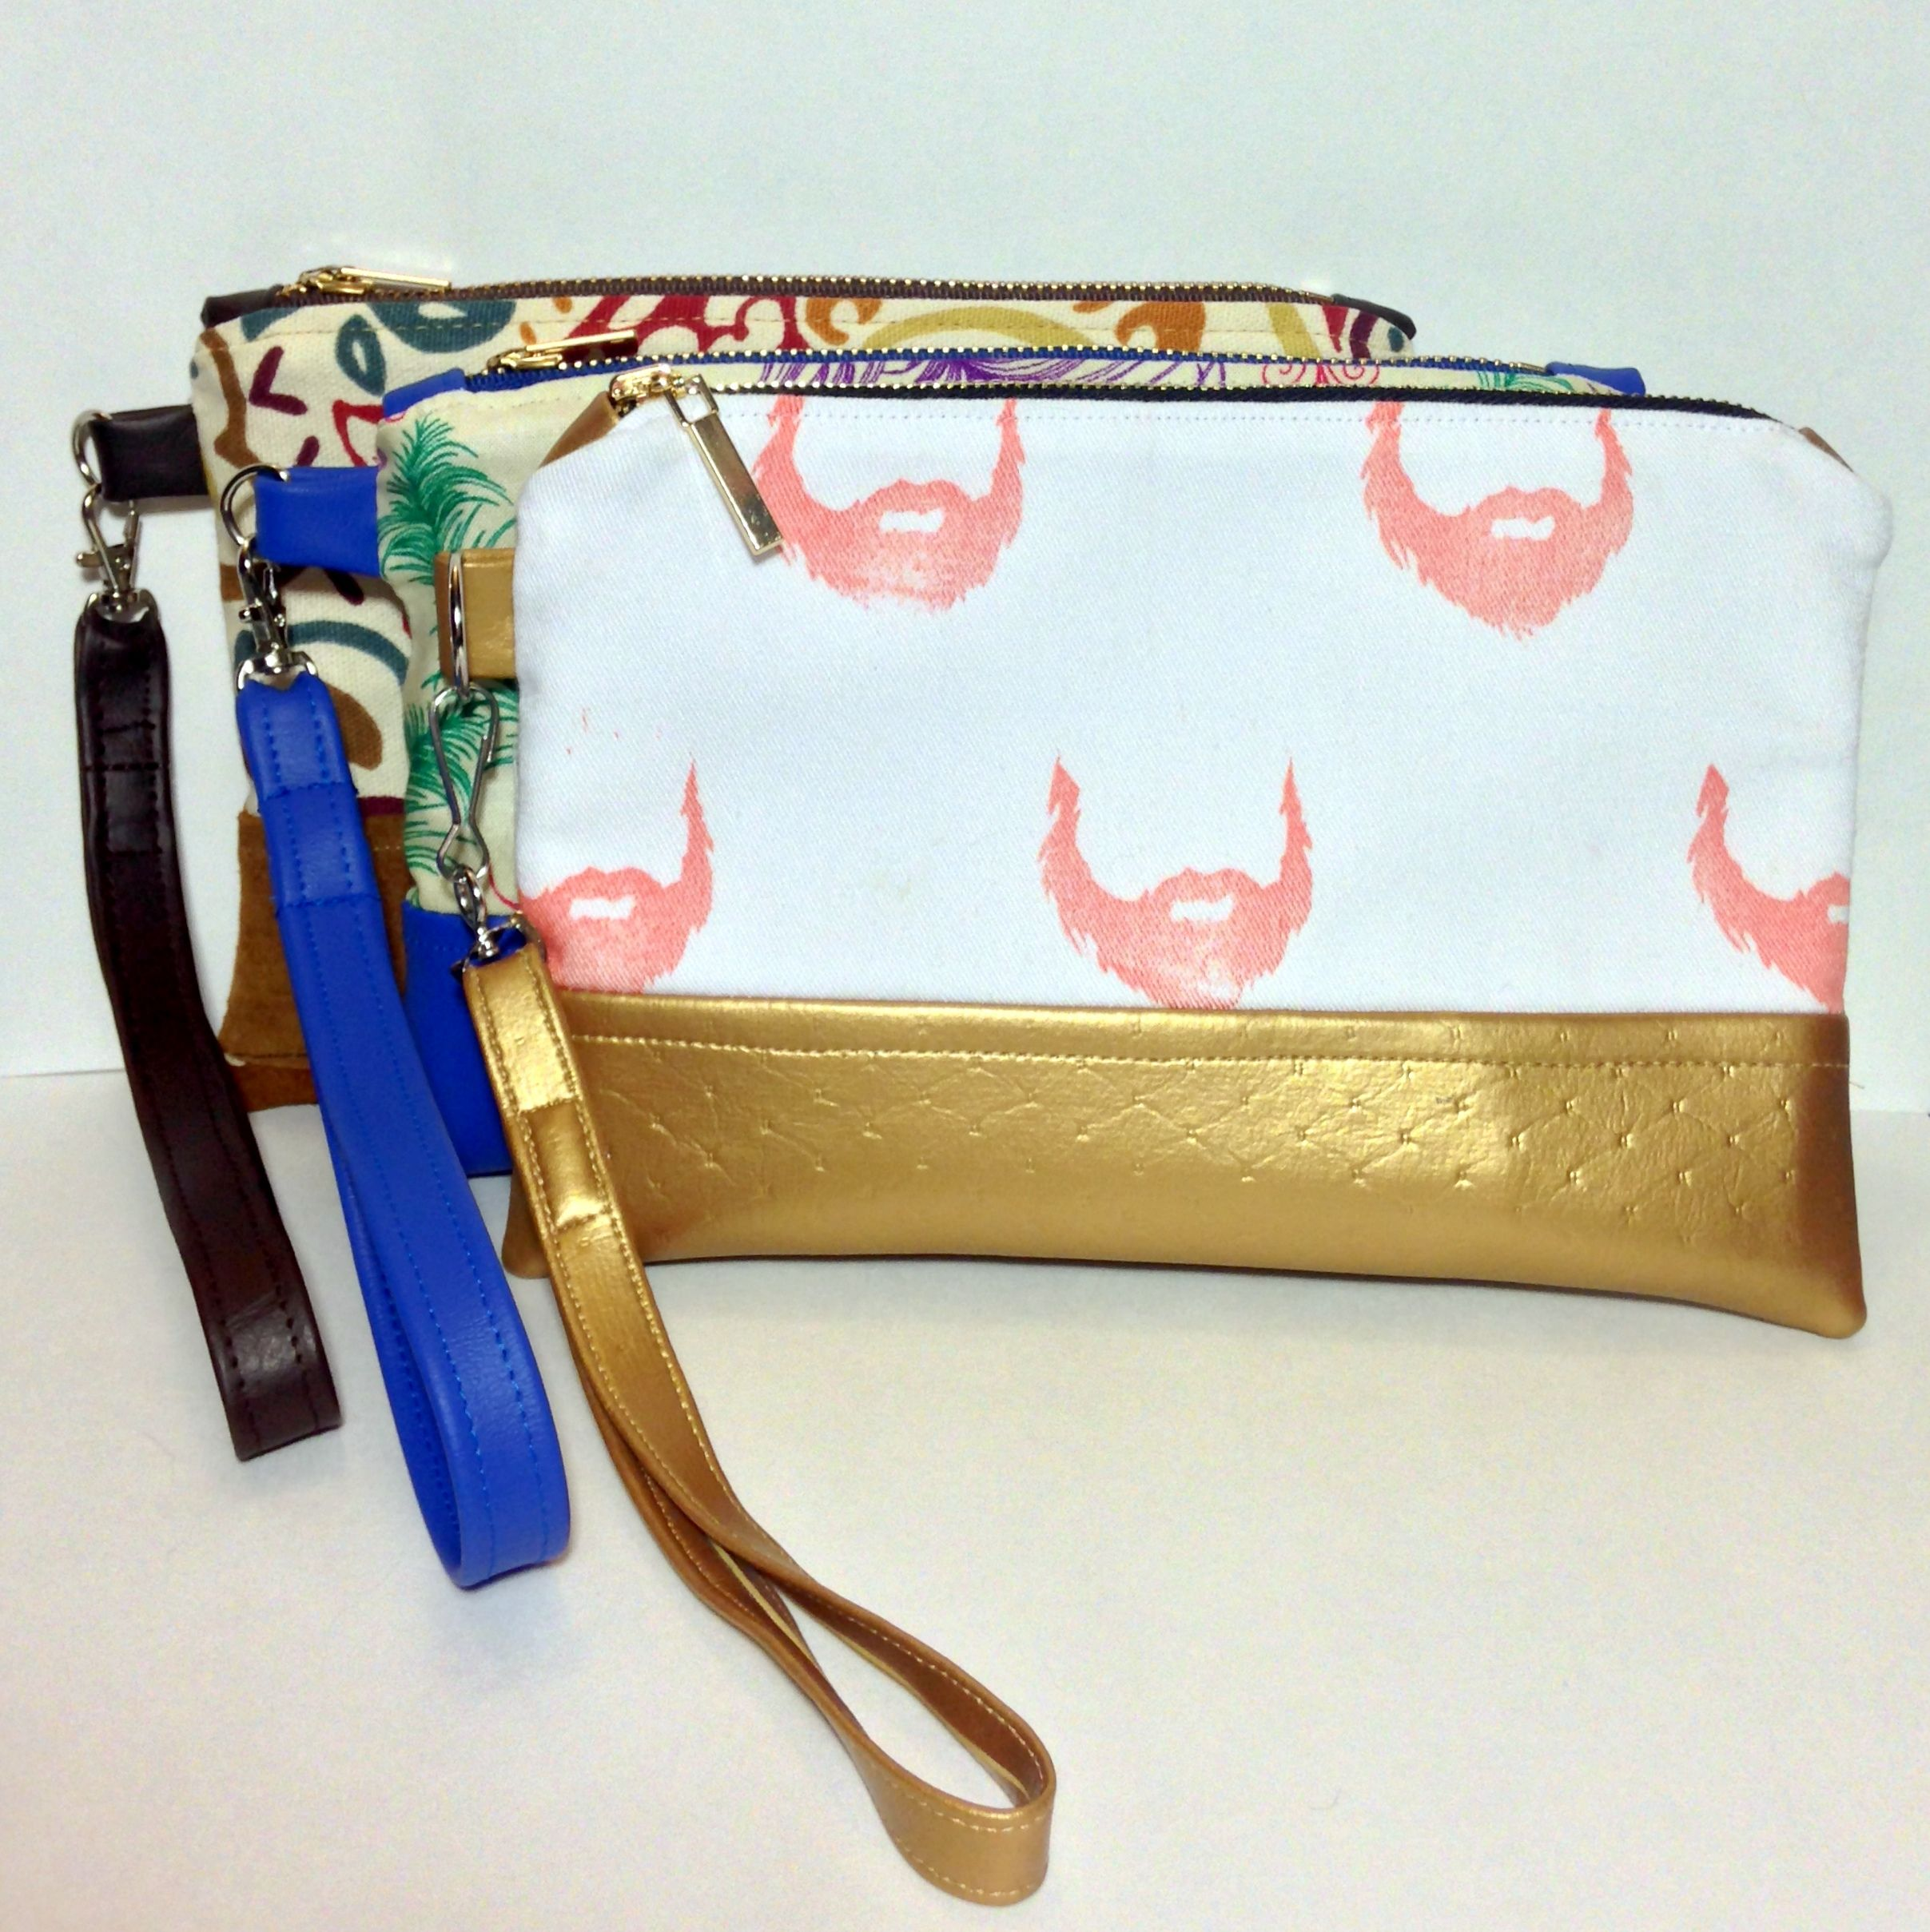 Handmade vinyl and leather bottom clutches with handmade removable straps